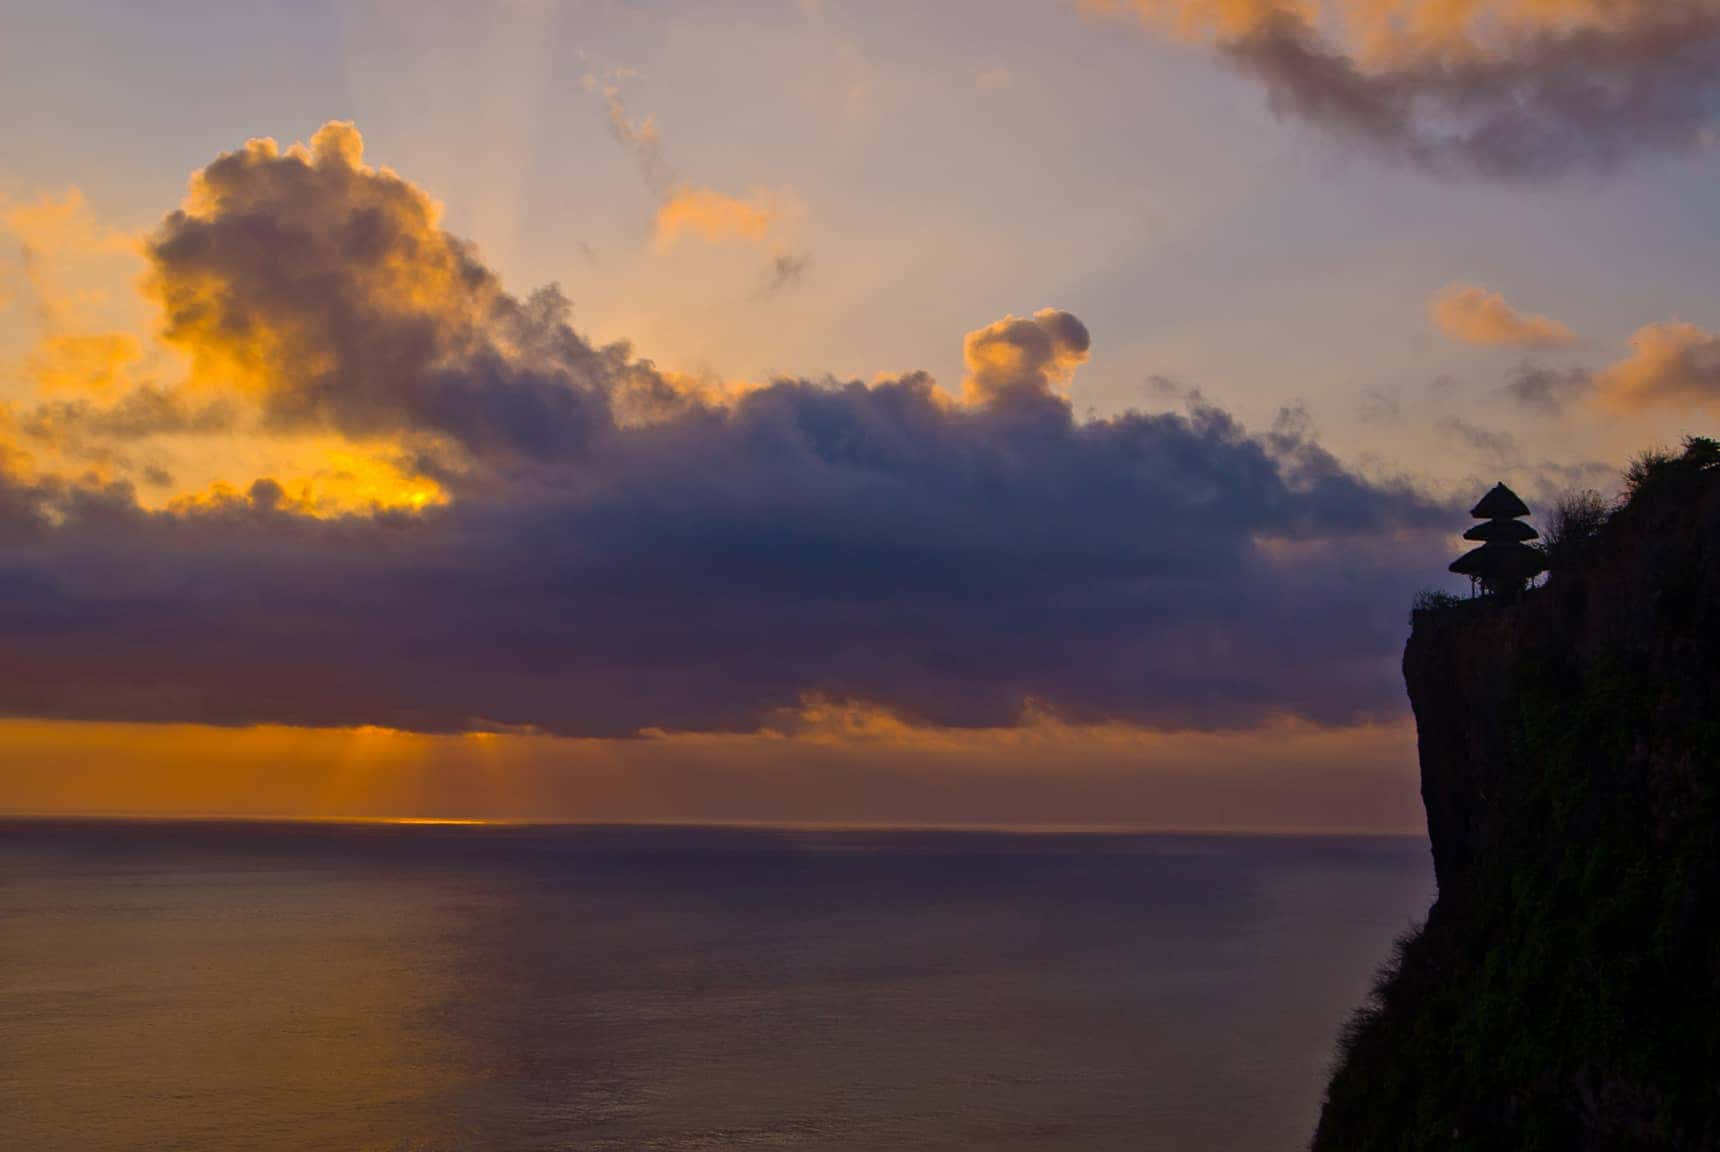 sunset views from Uluwatu Temple in Bali